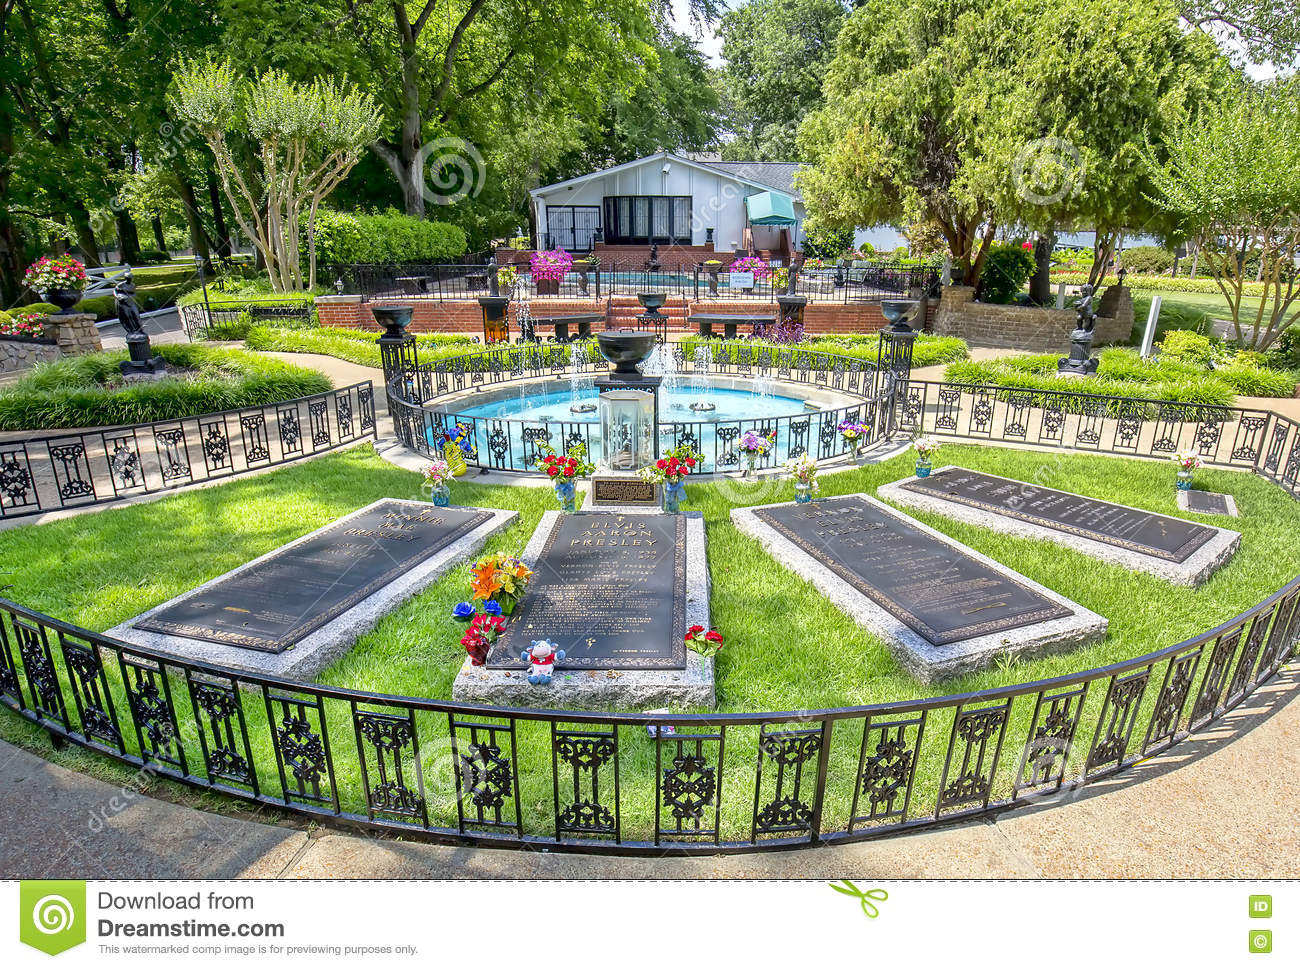 Elvis presley and parents graceland burial site editorial for House pictures website